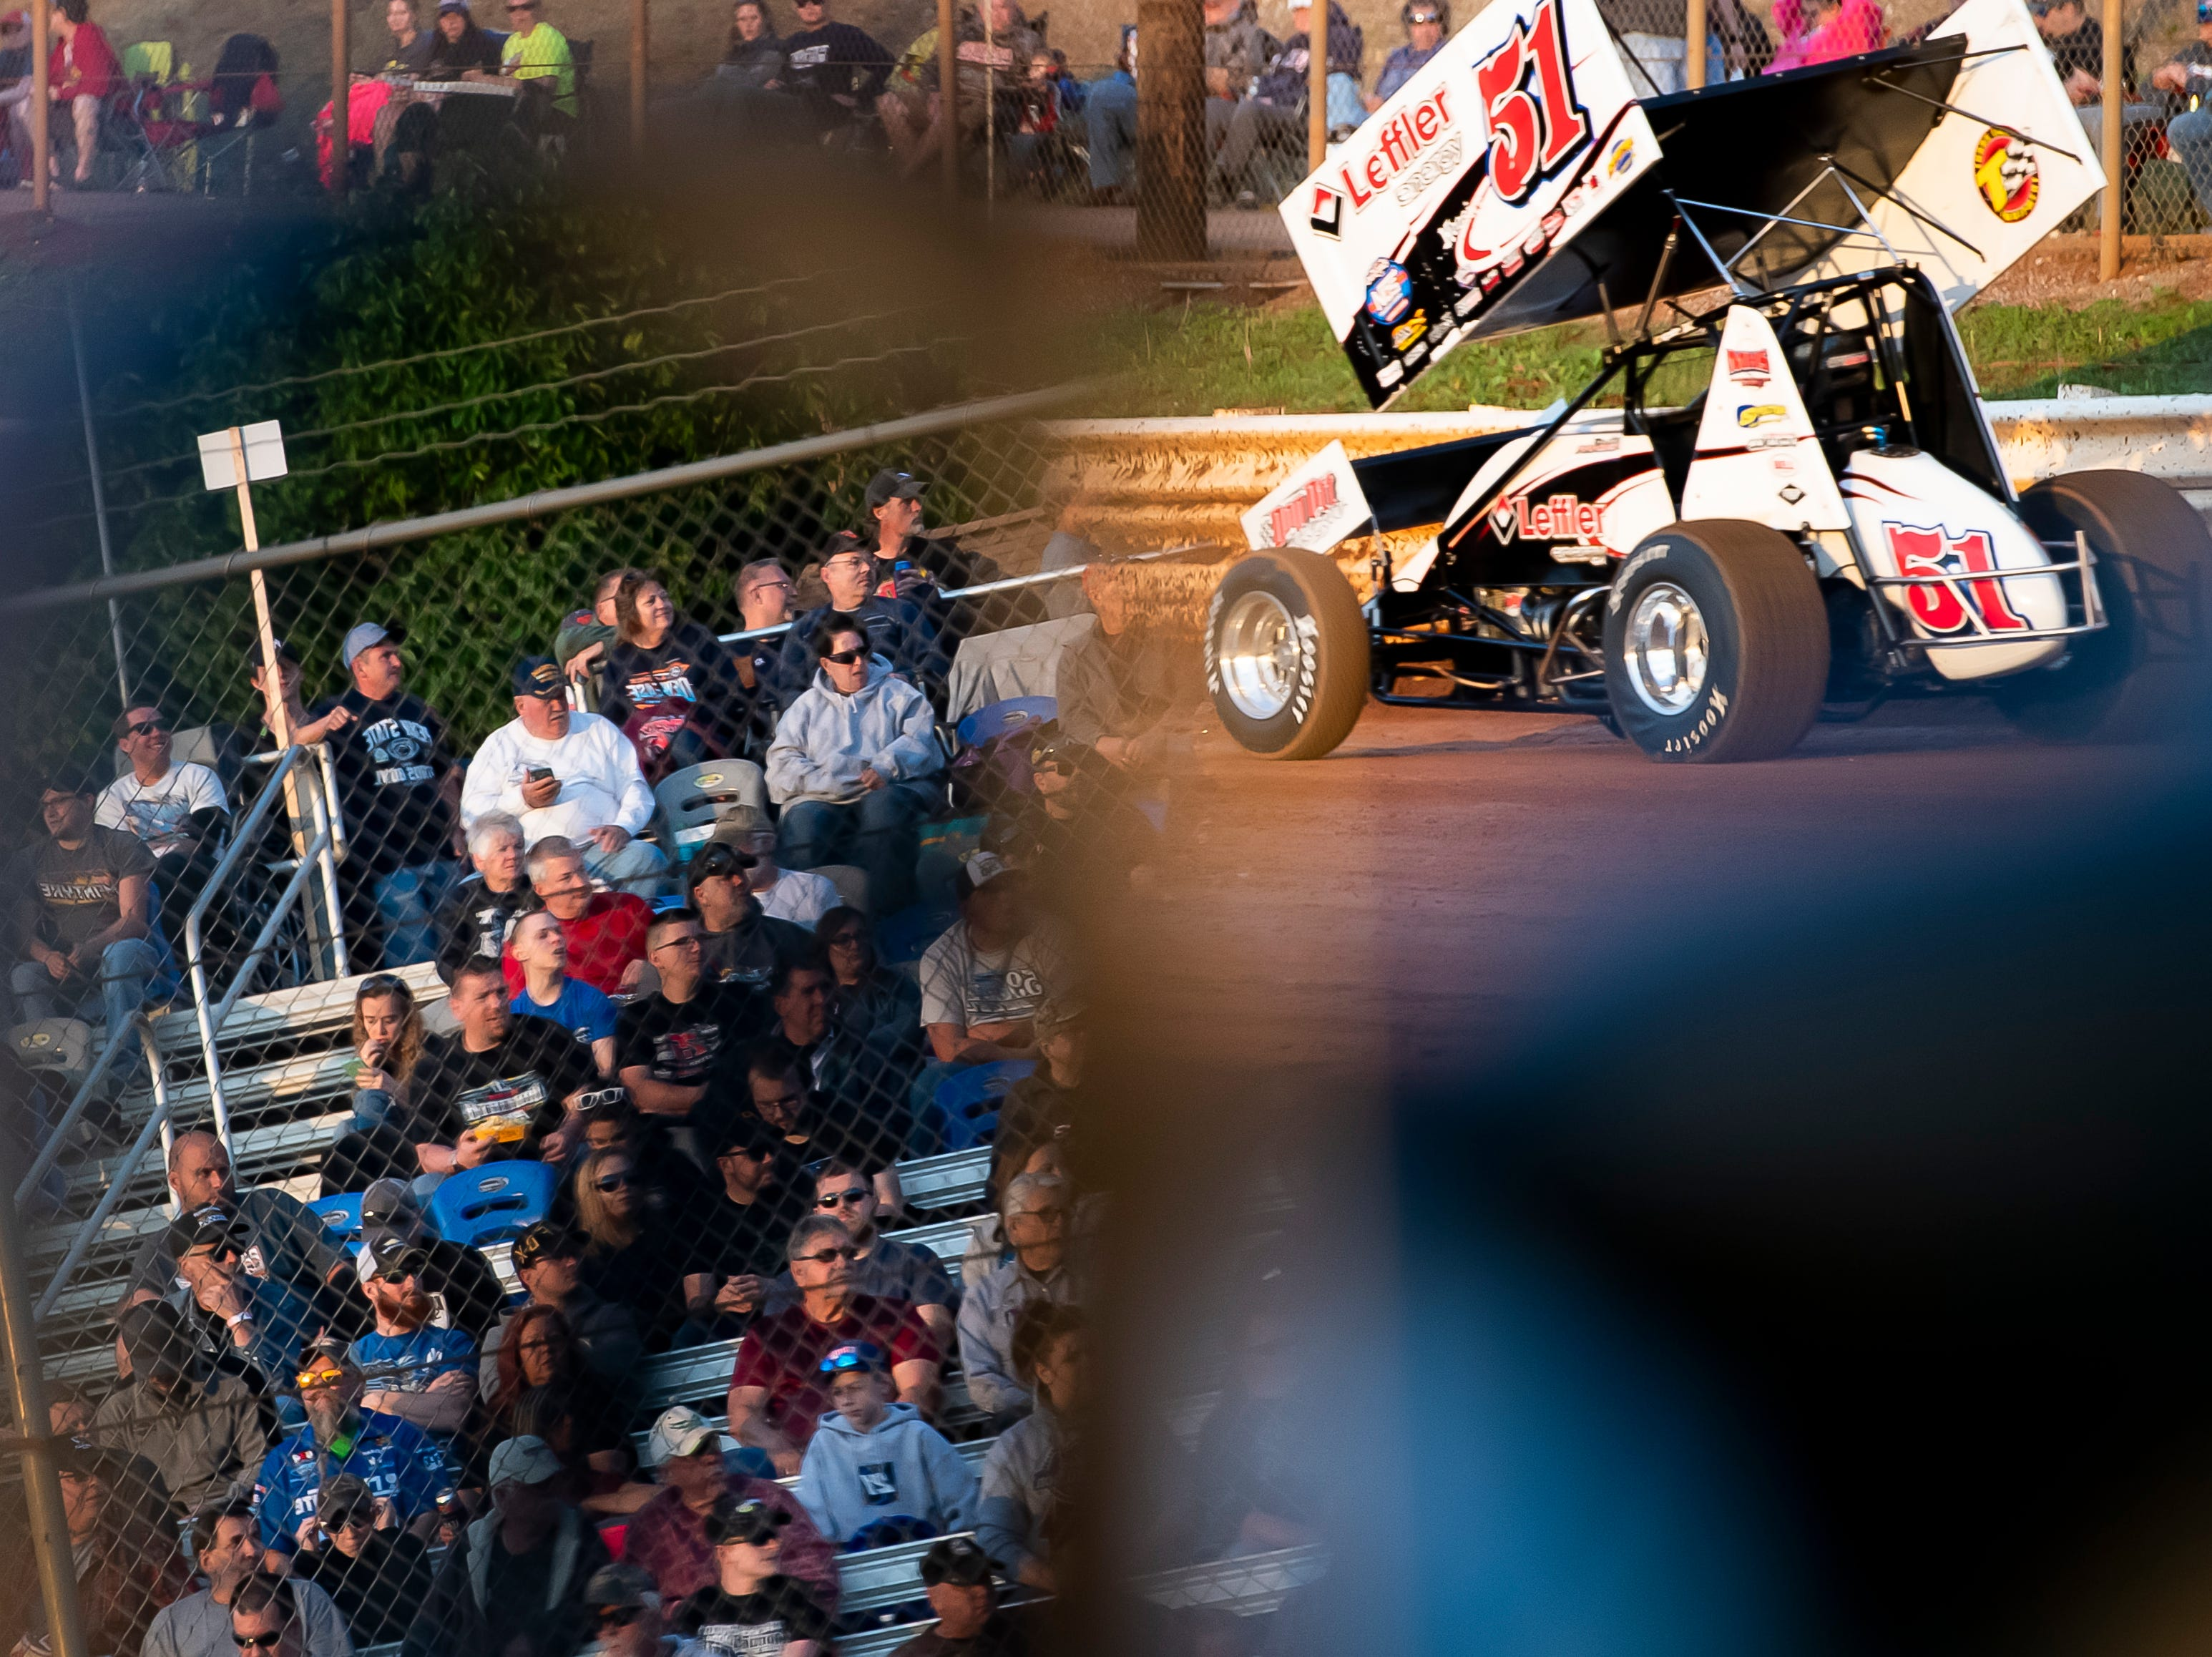 Spectators in the stands are reflected in a truck's mirror as Freddie Rahmer in the number 51 car drives in the time trials during the World of Outlaws Gettysburg Clash at Lincoln Speedway in Abbottstown on Wednesday, May 15, 2019.